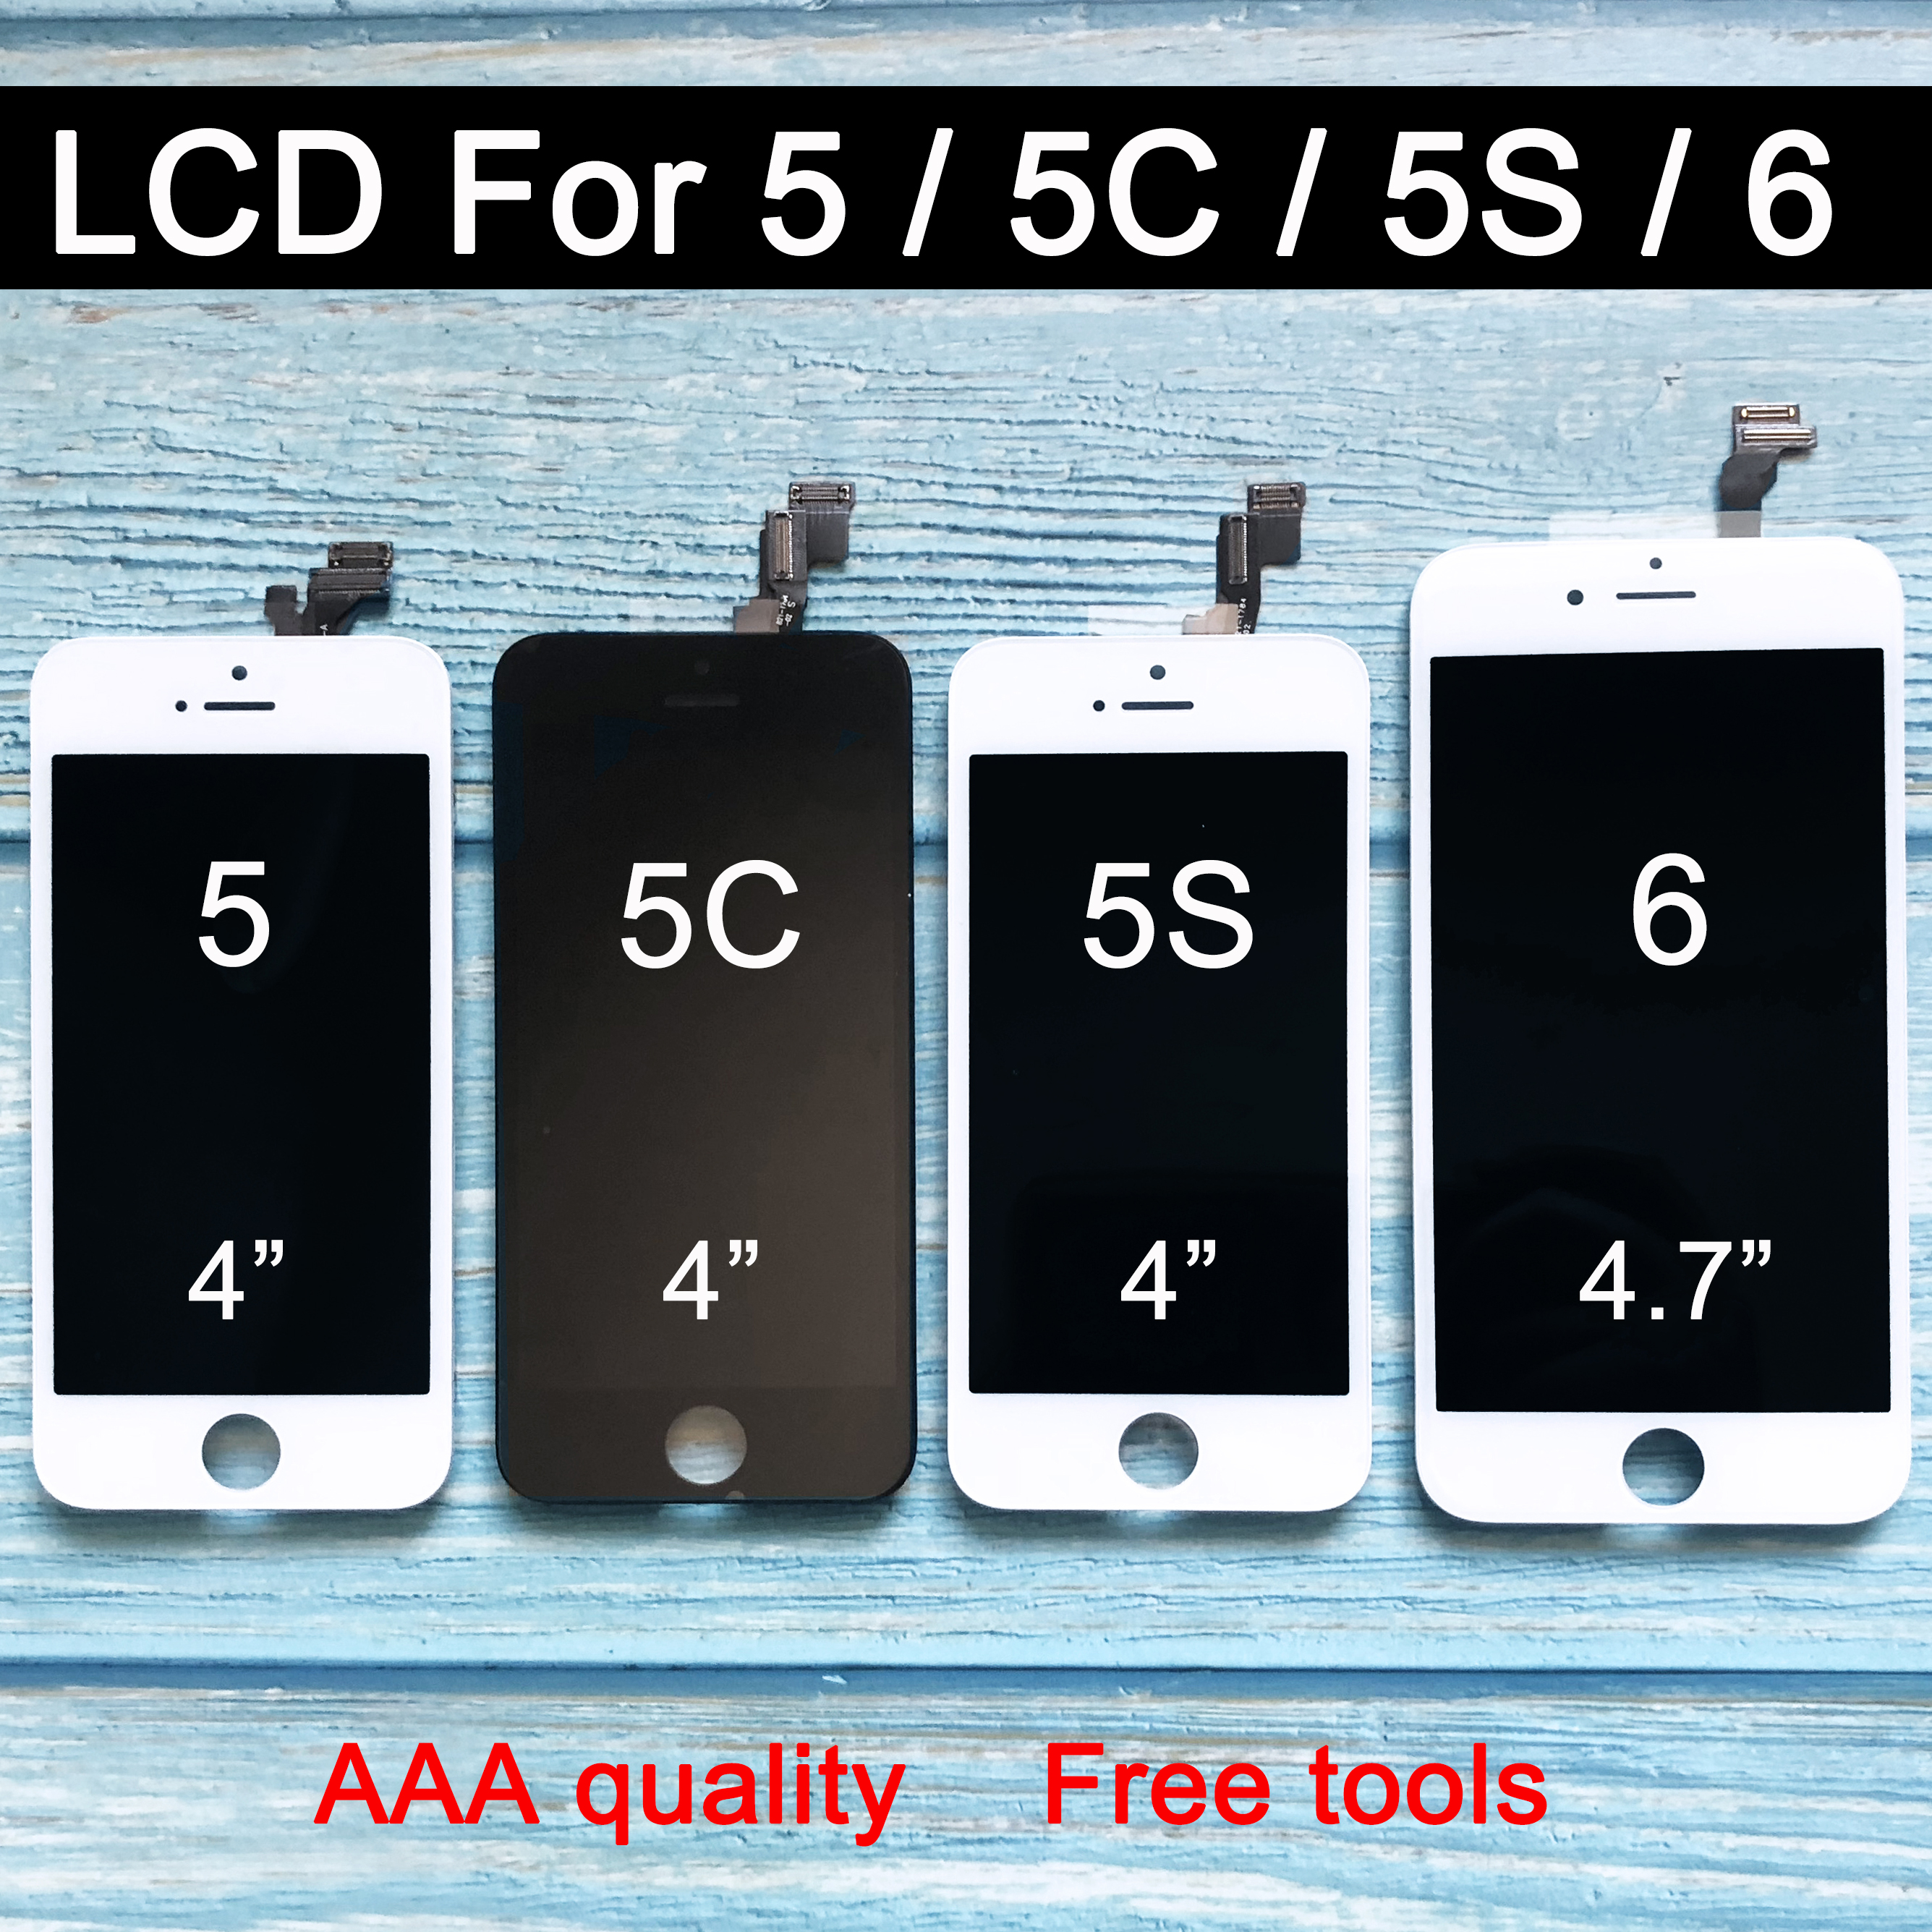 Venda da fábrica de LCD Para iphone 6 Display lcd para iphone 5 5c 5s LCD Screen Display Toque Digitador Assembléia Substituição Da Tela